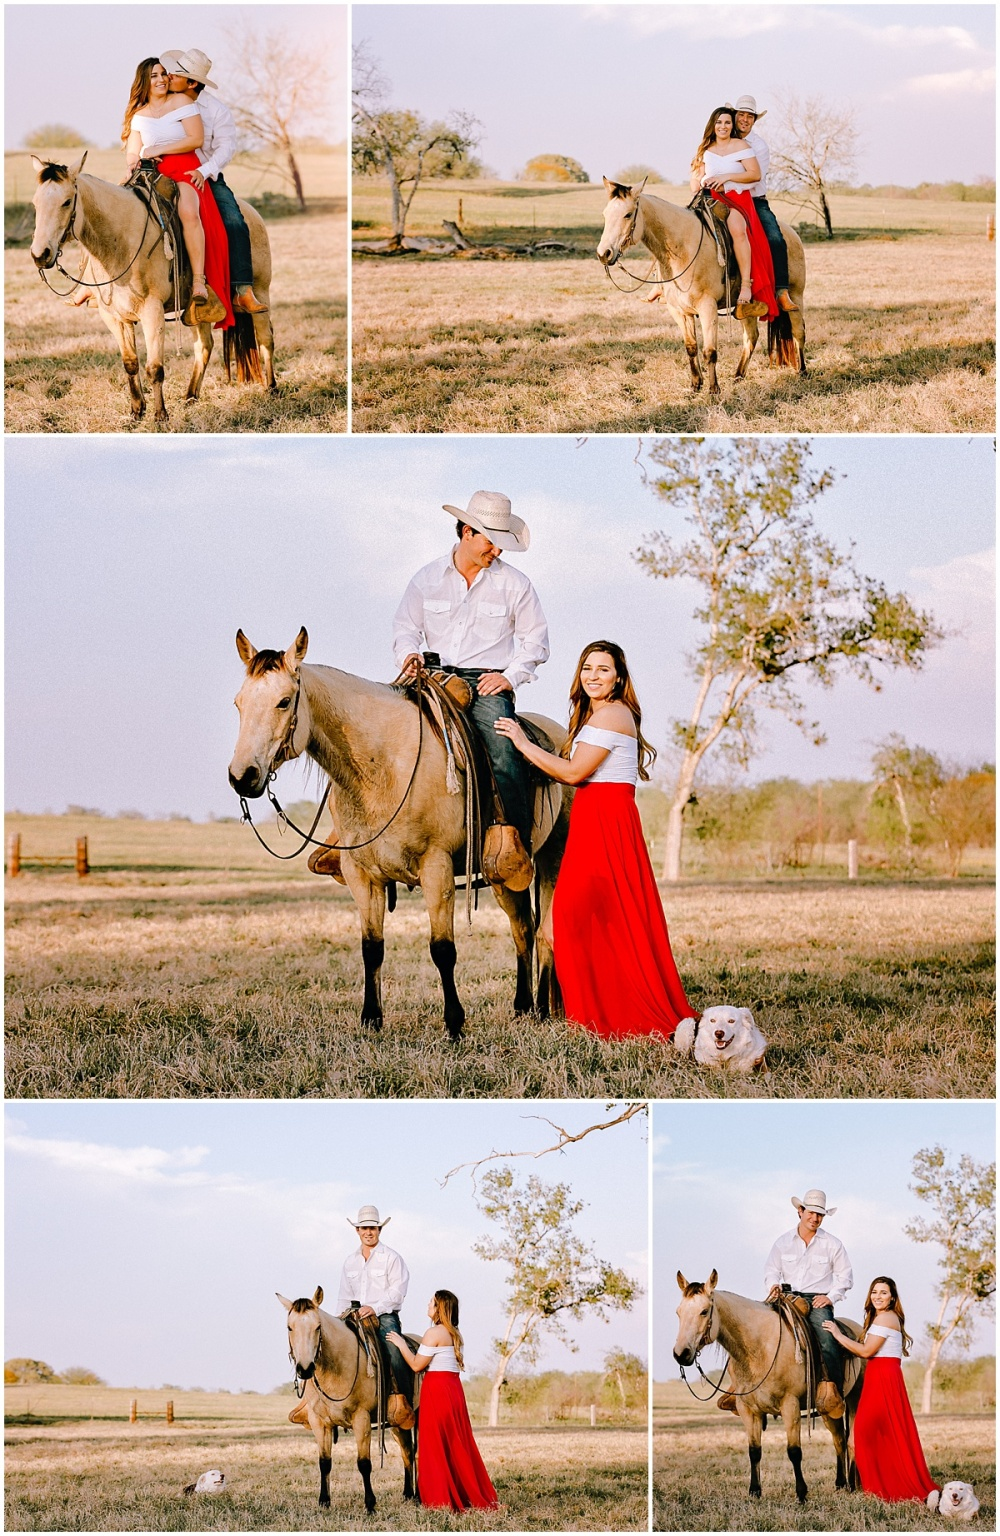 Family-Children-Birthday-Portraits-San-Antonio-Hill-Country-Texas-Carly-Barton-Photography_0014.jpg